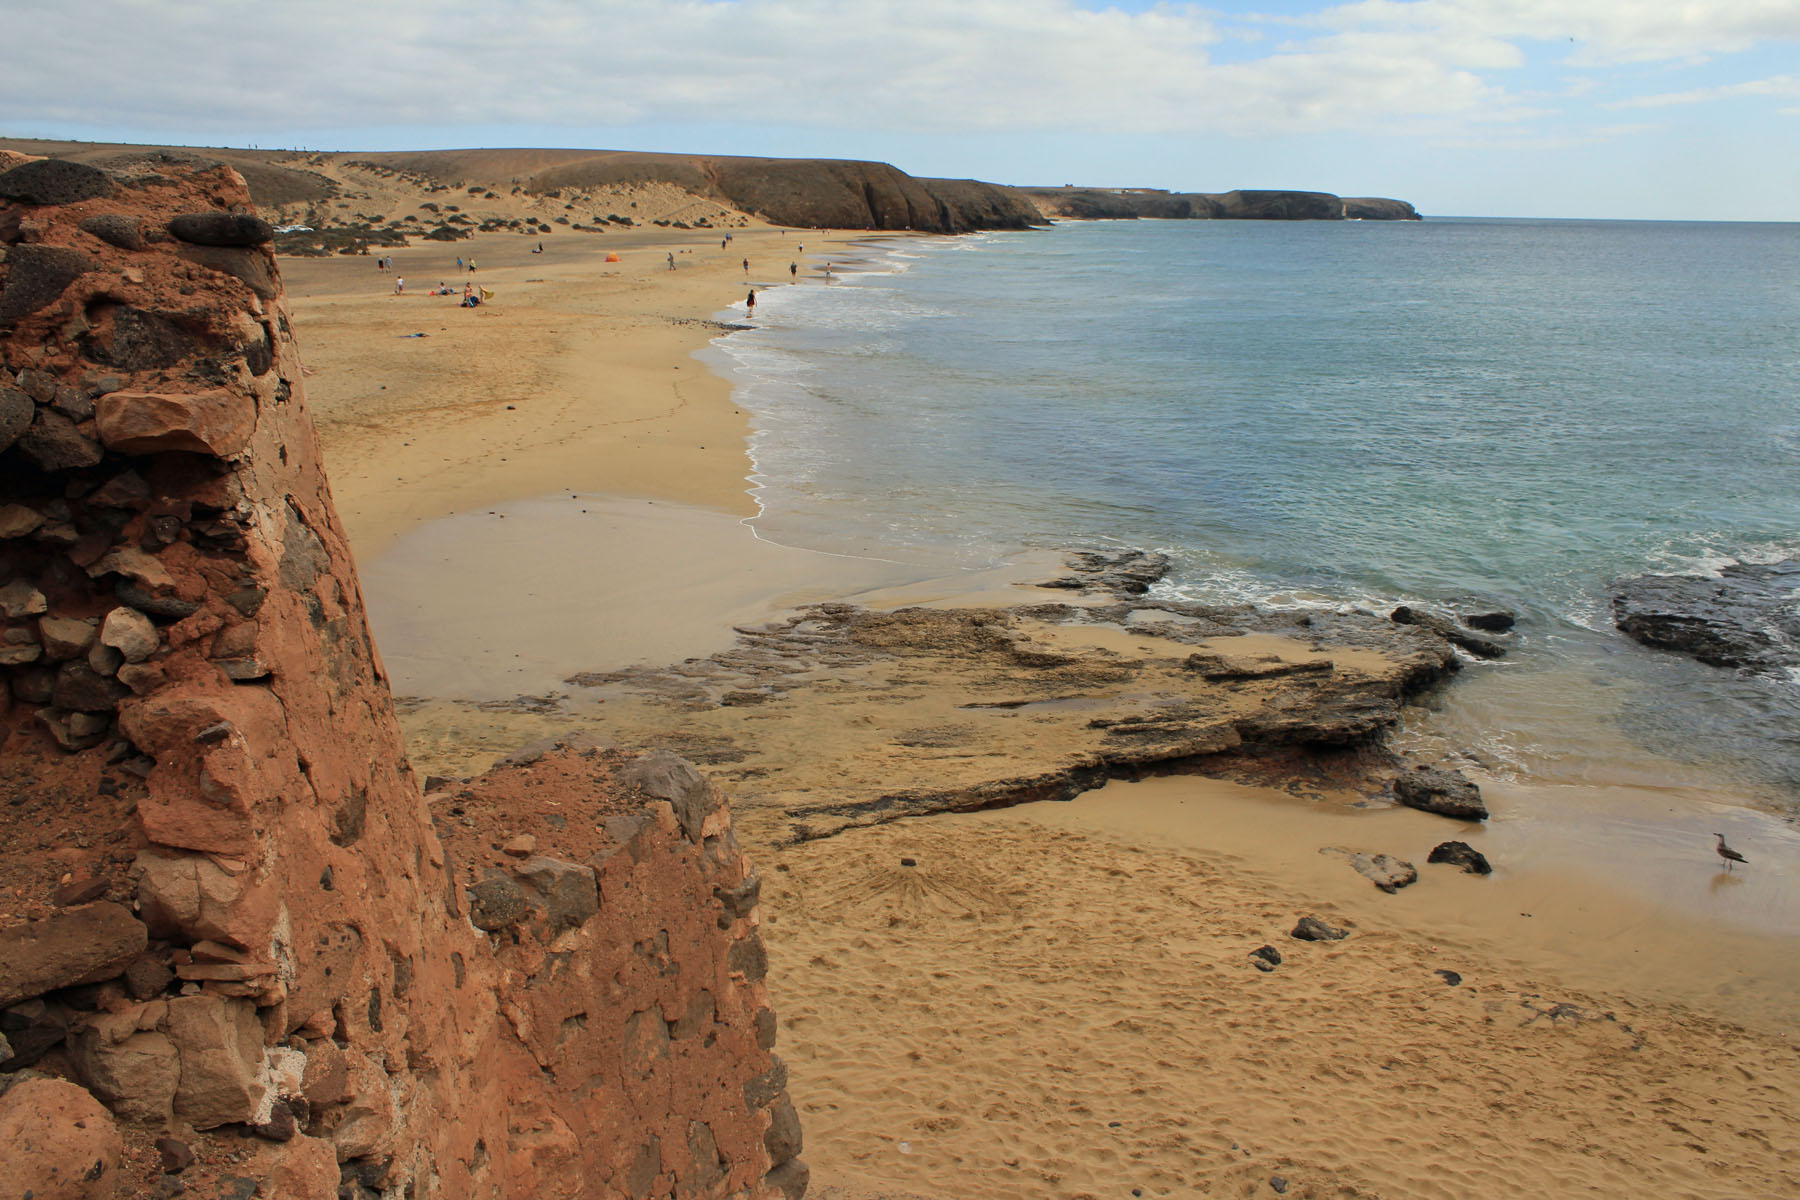 Canary Islands, Lanzarote, Playa de Mujeres